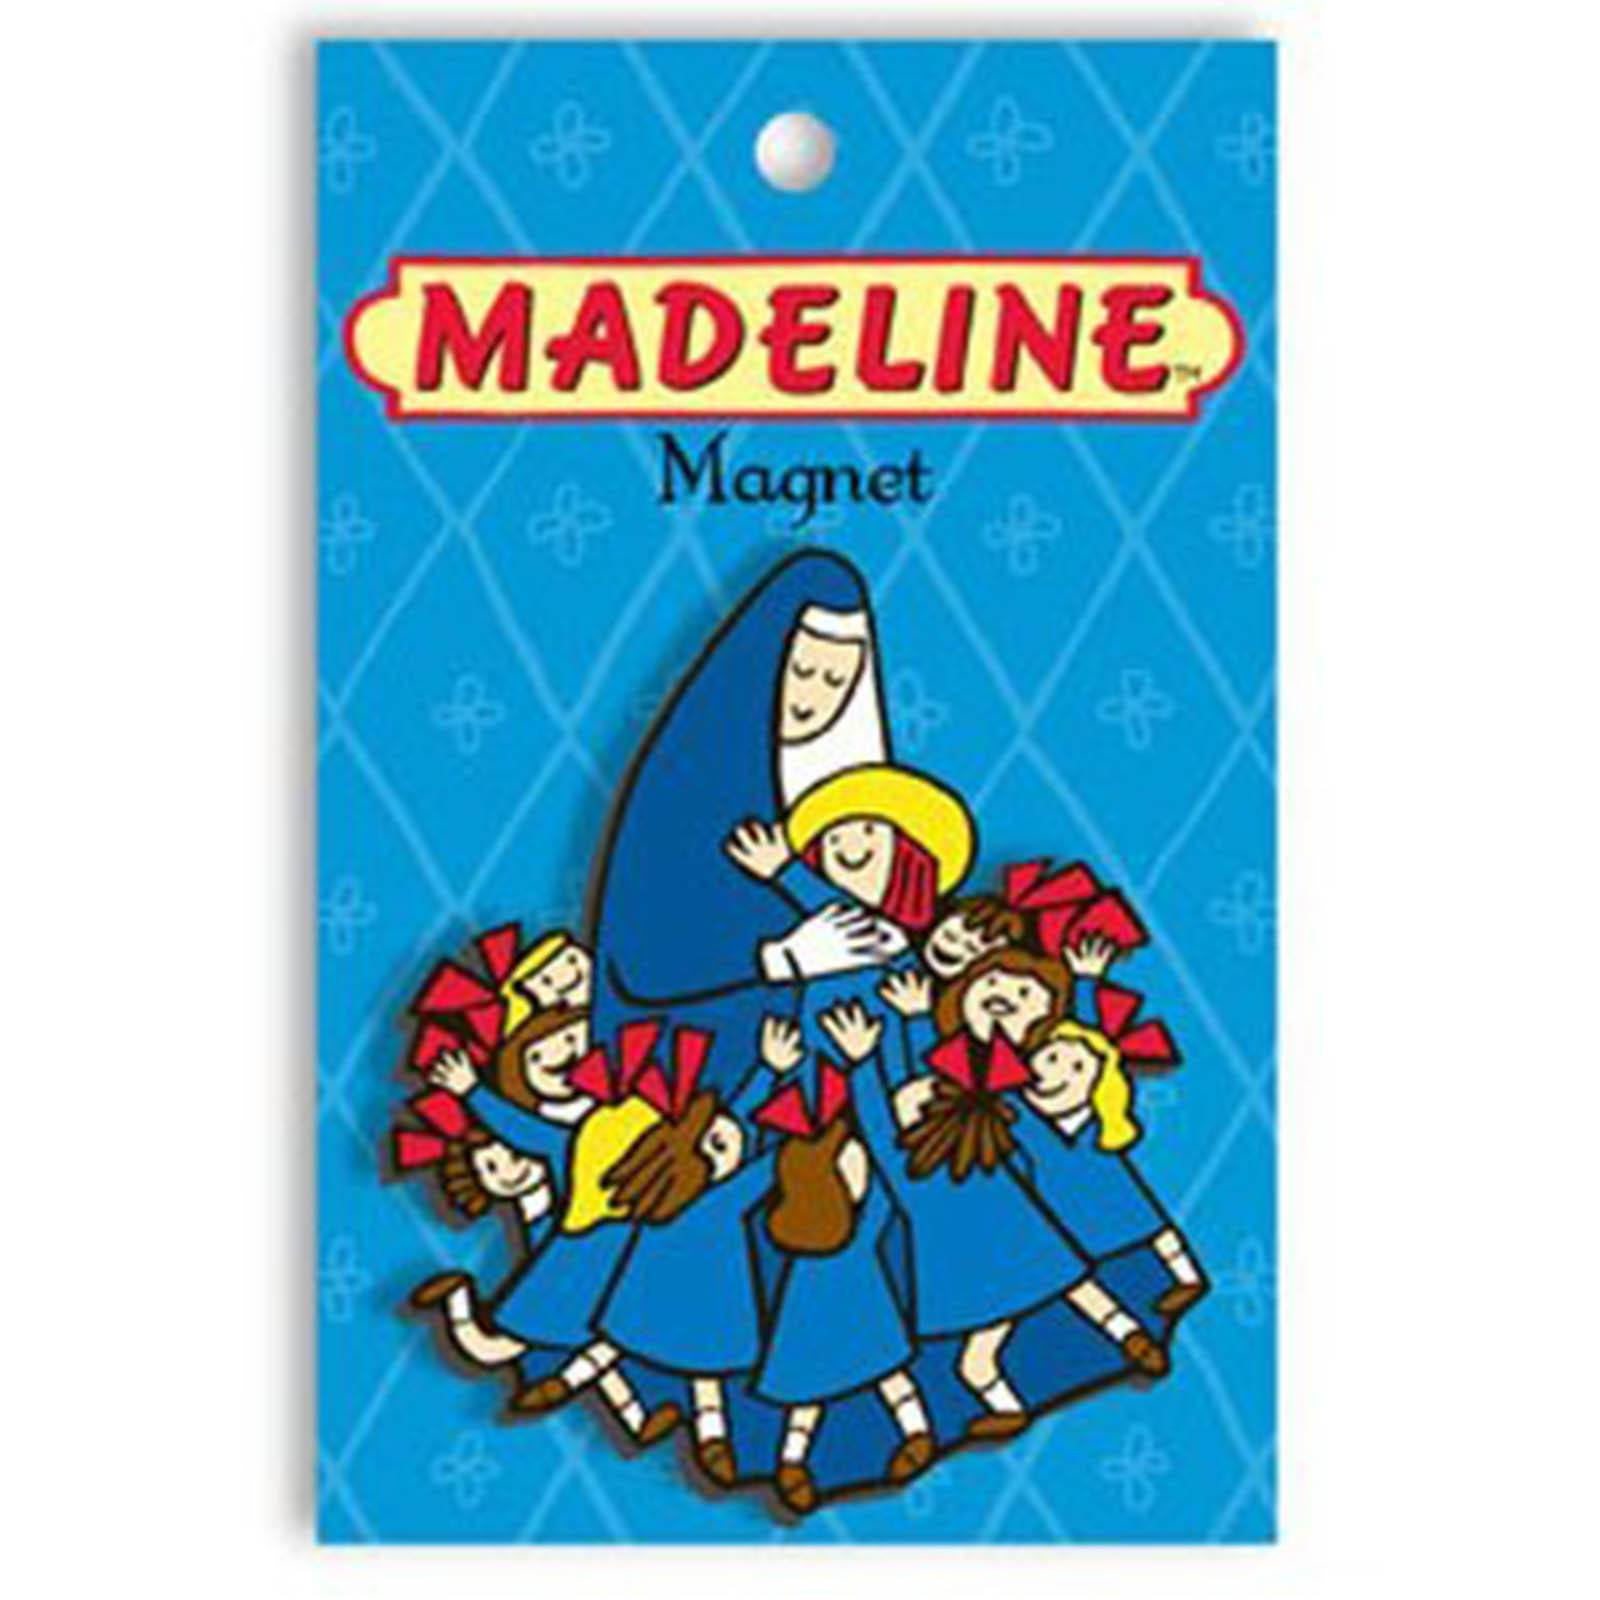 Madeline All The Kids Magnet by